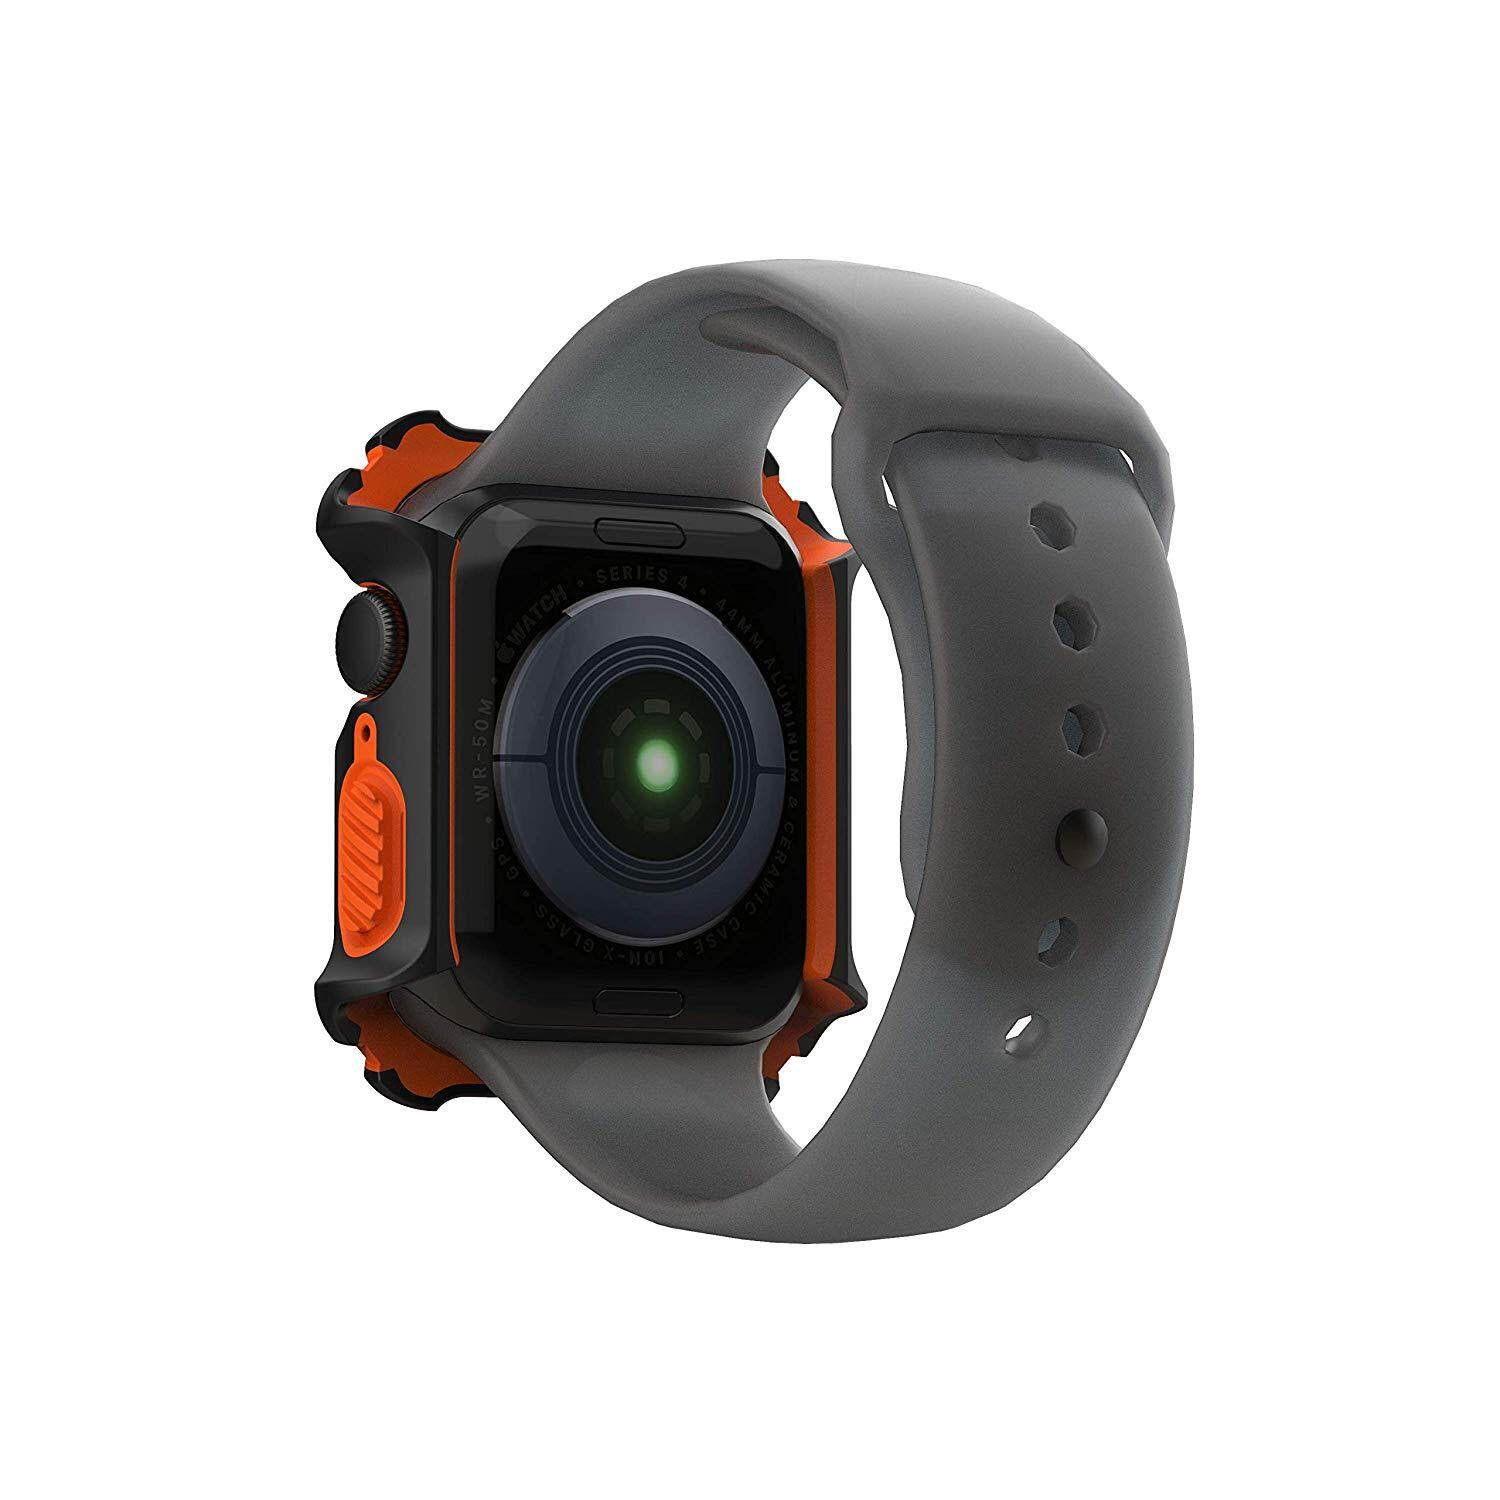 UAG Rugged Case Series Drop Protection Case for Apple Watch 44mm Series 4 Series 5 - Black/Orange